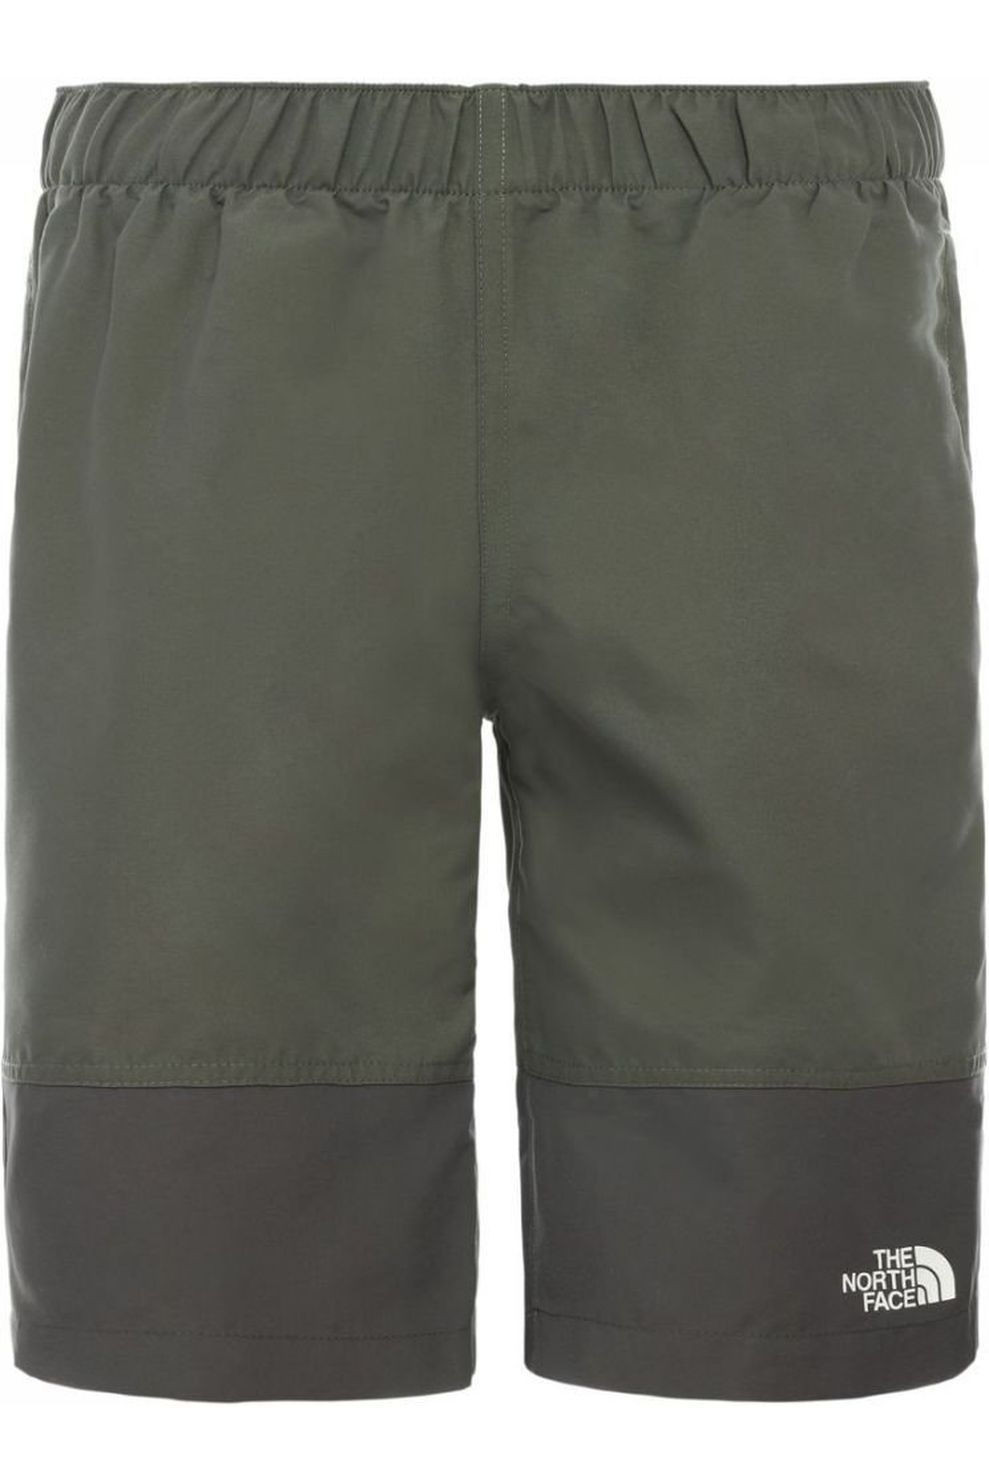 The North Face Boardshort Class Five Water voor jongens - DonkerGroen - Maat: 176